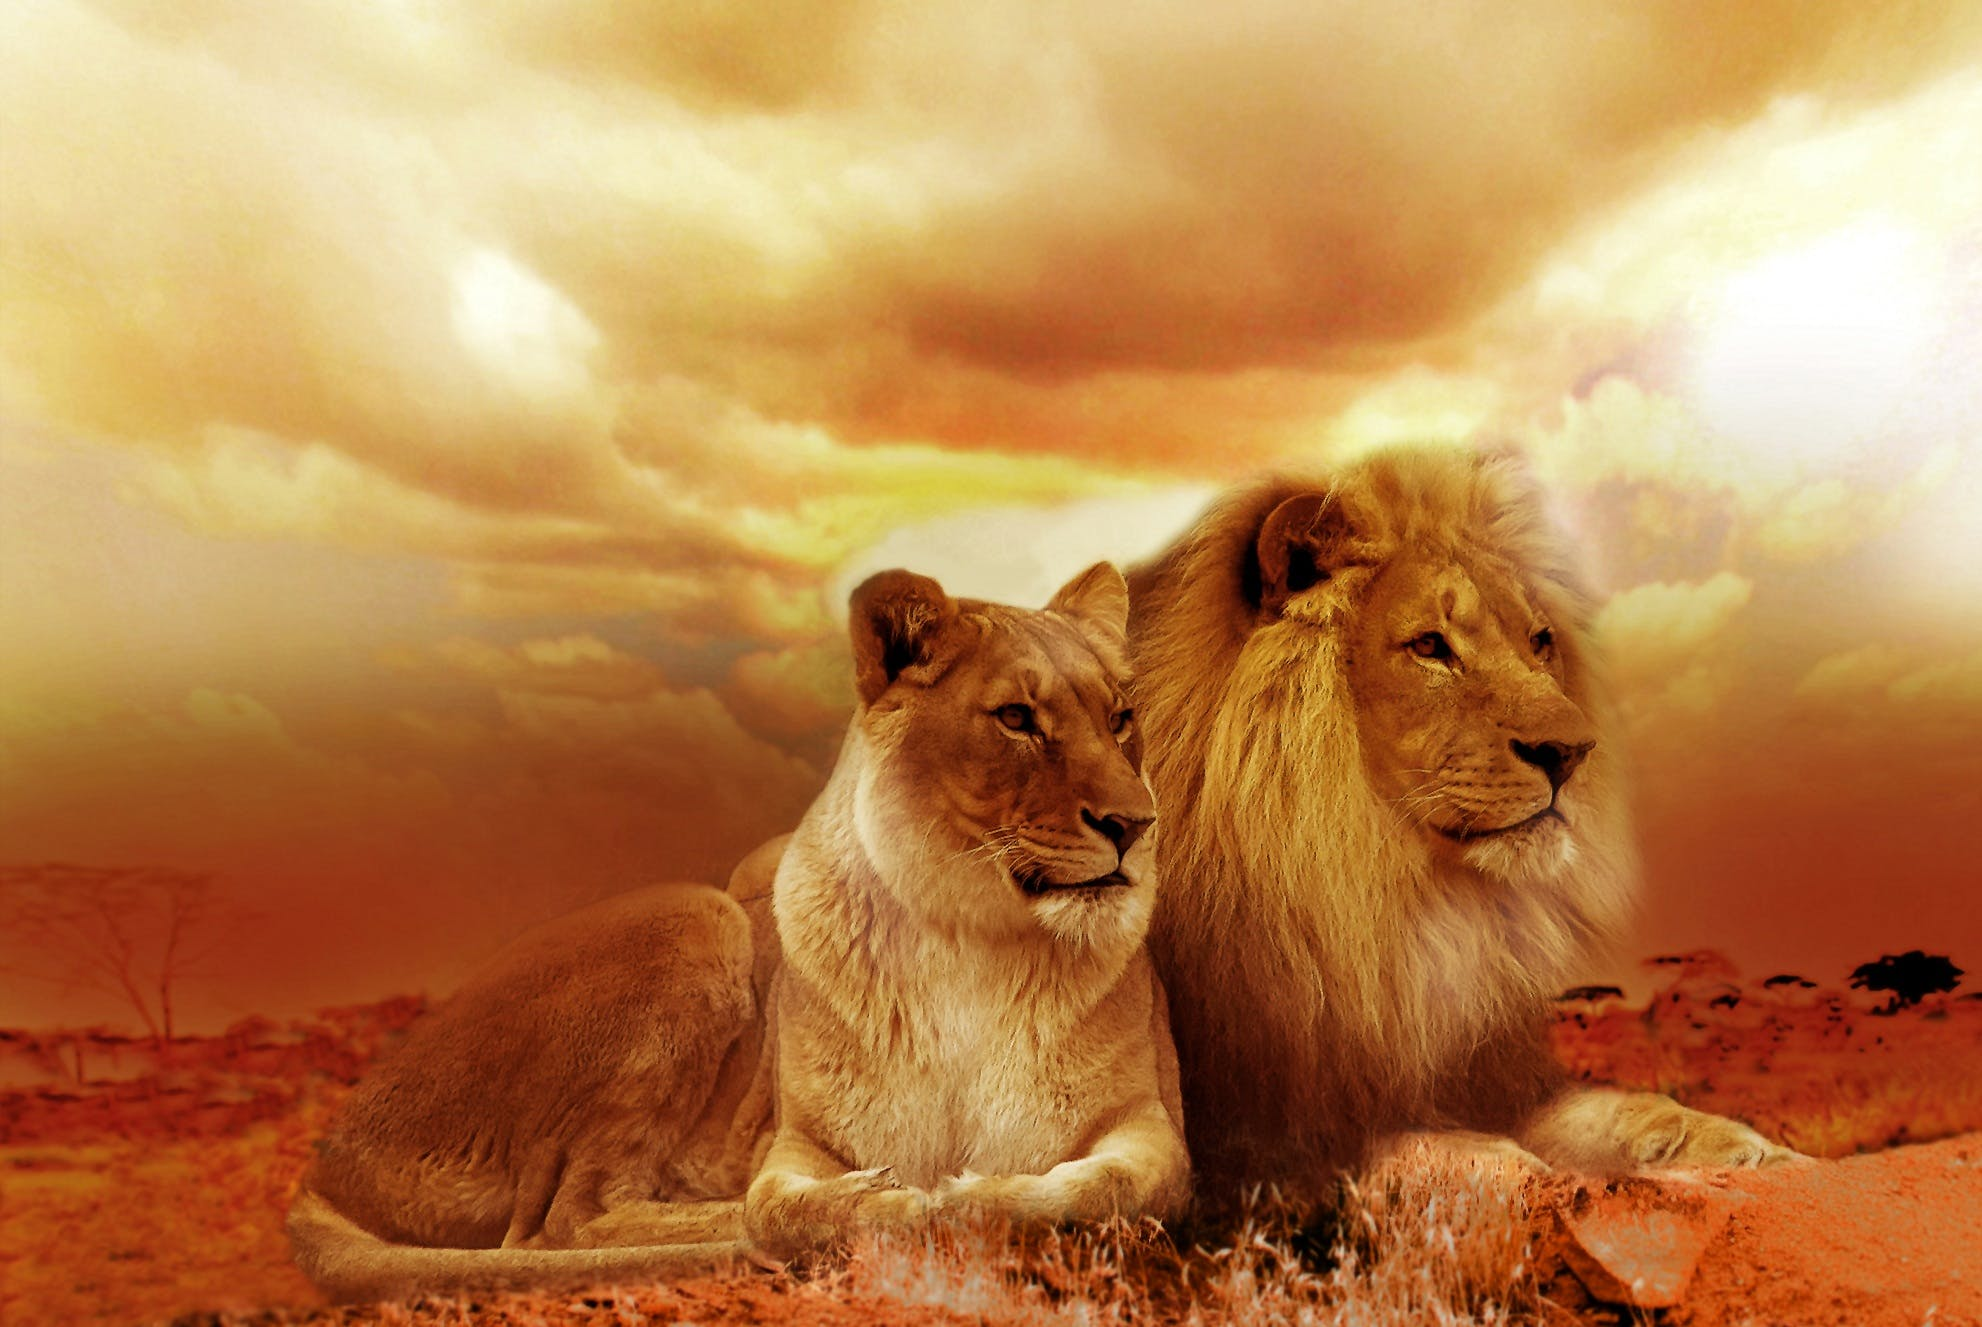 Lion and Lioness Under White Sky during Sunset